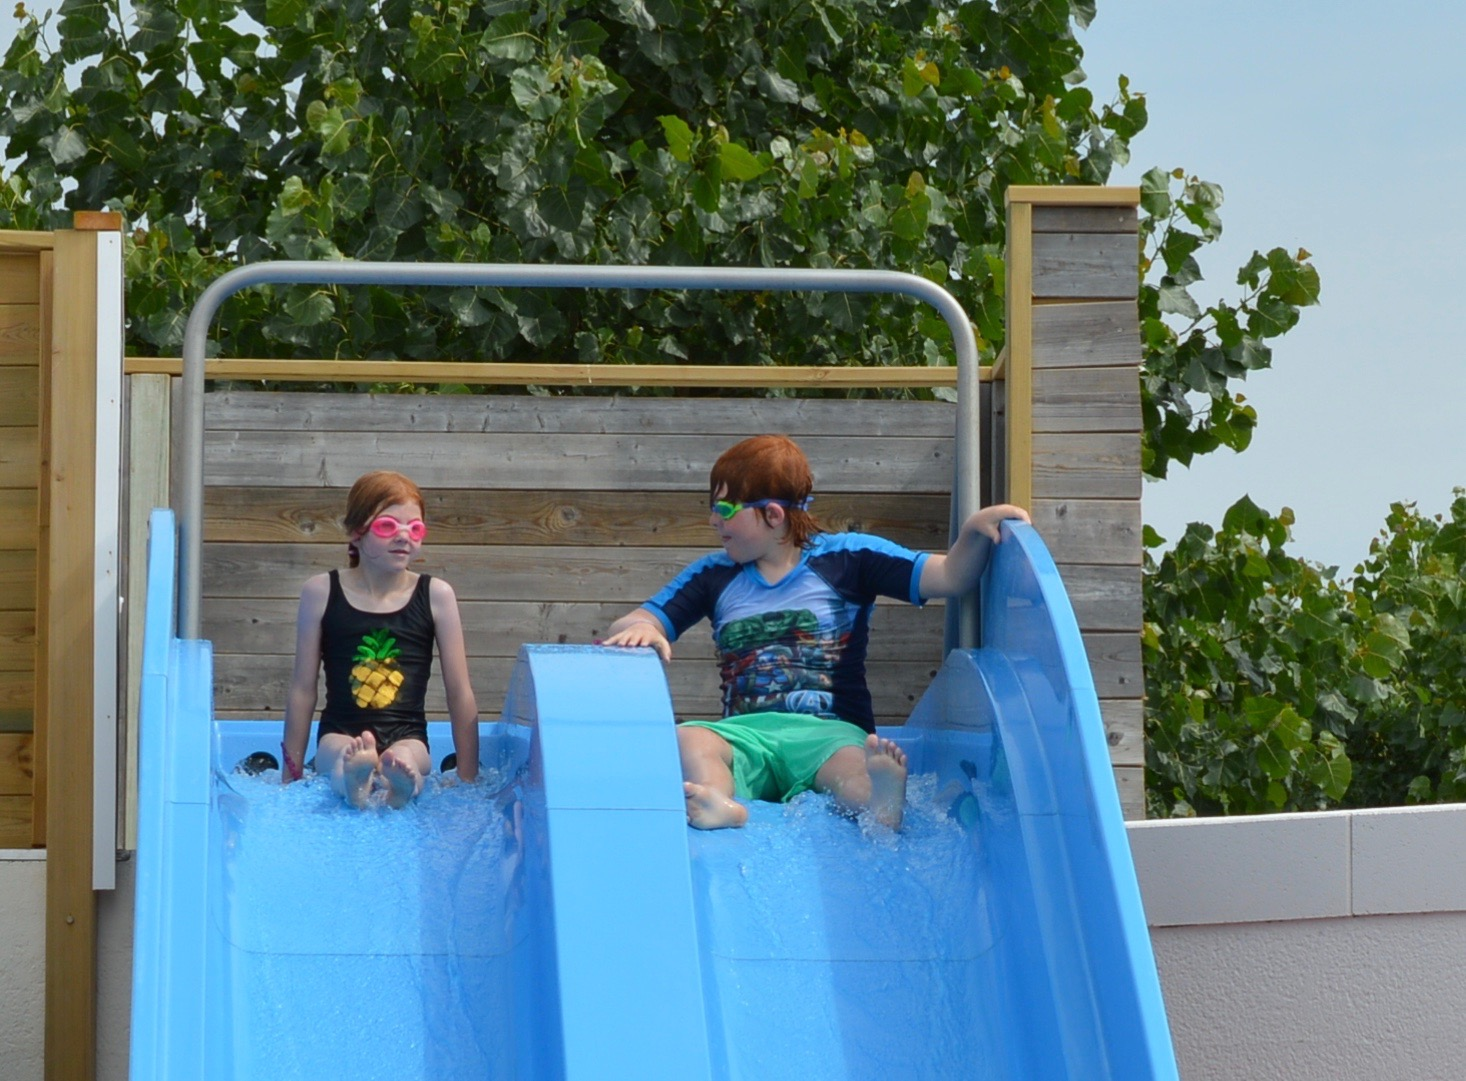 Les Ecureuils Campsite, Vendee - A Eurocamp Site near Puy du Fou (Full Review) - water slides